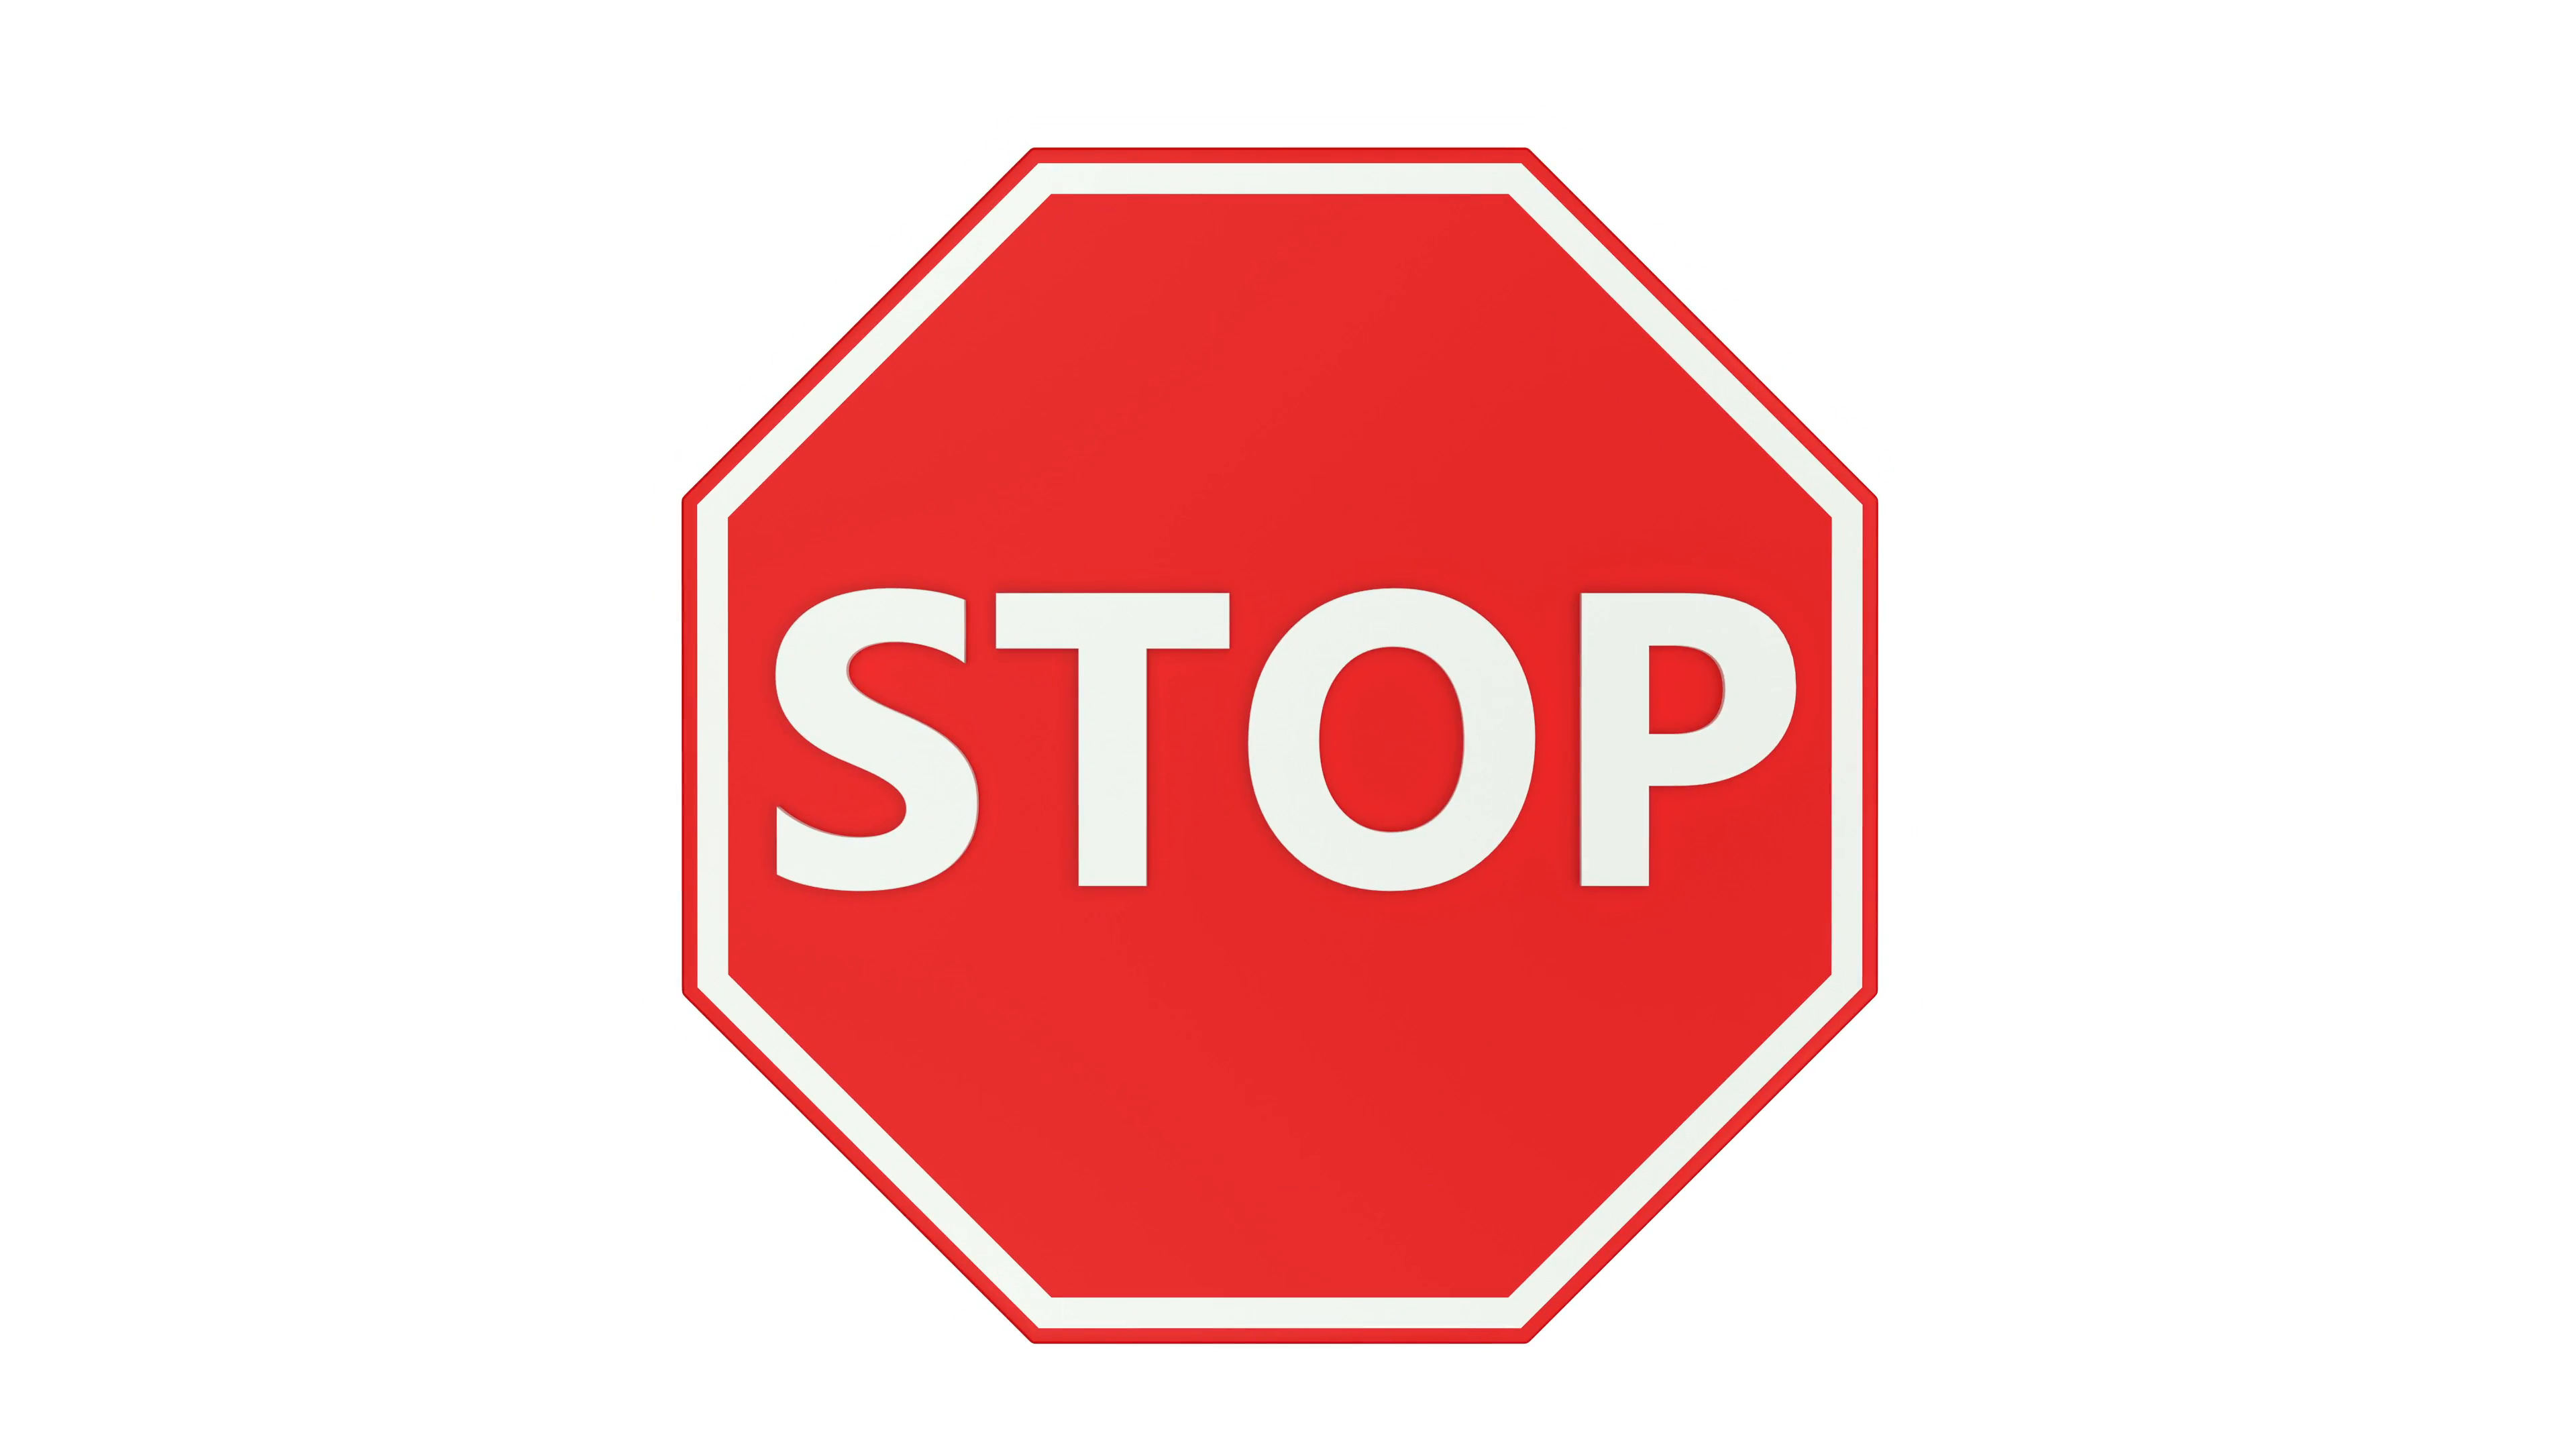 Stop sign image.